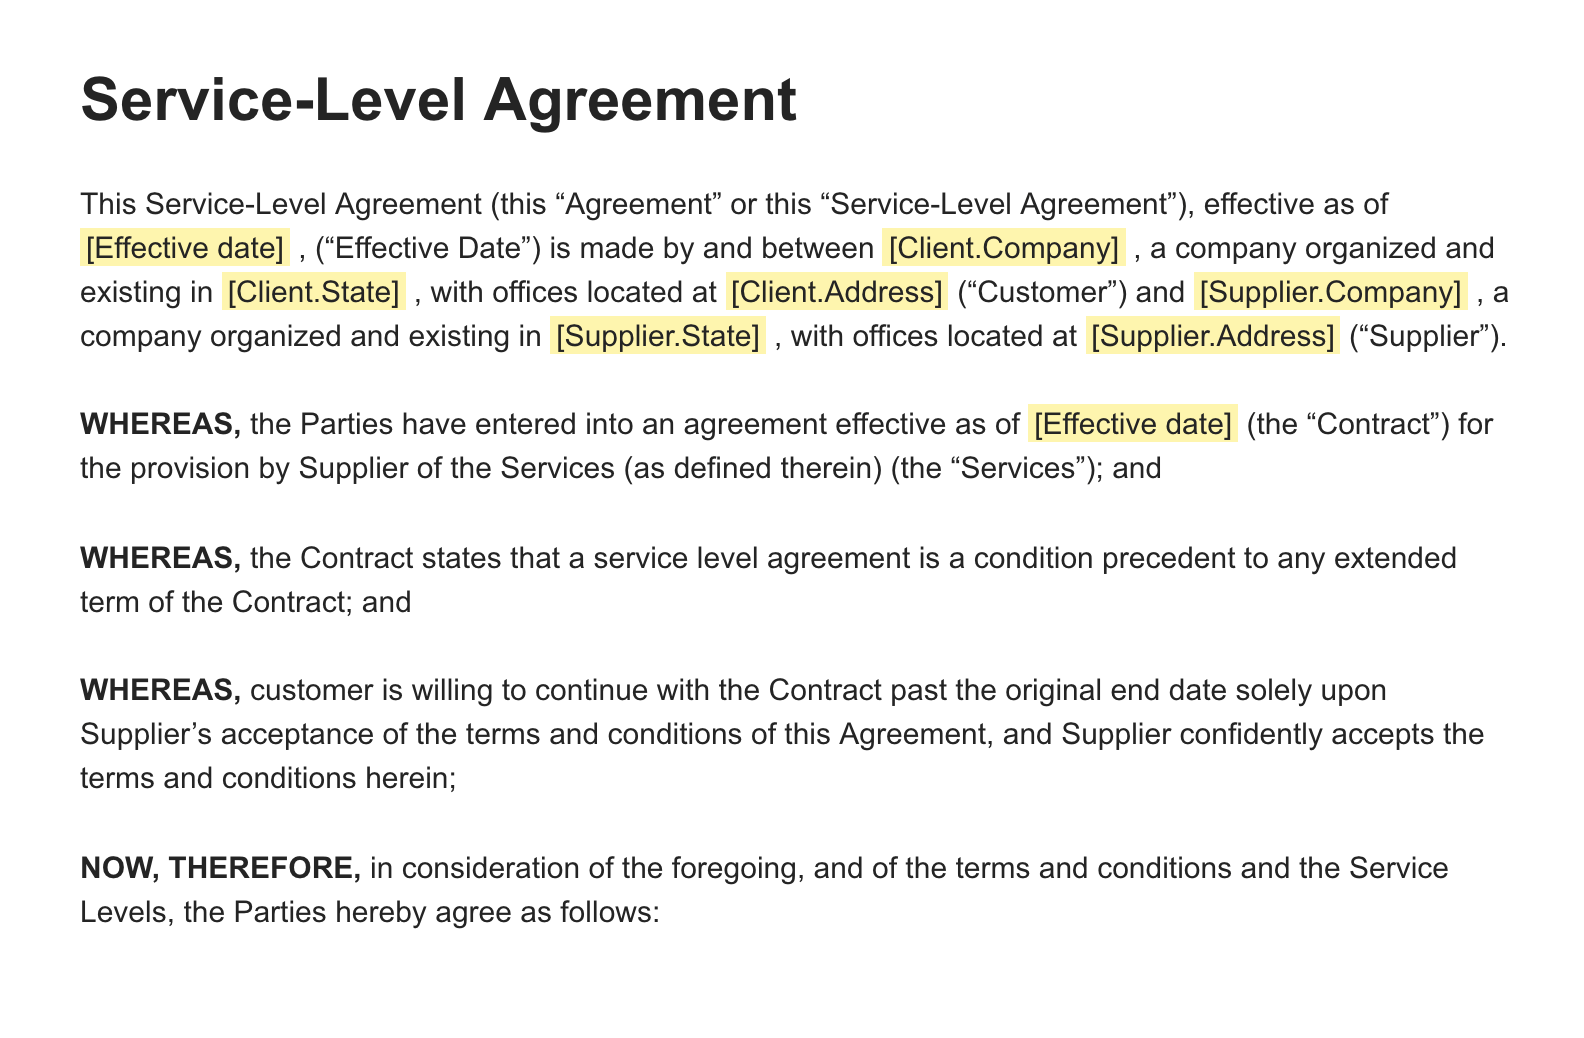 An sla should record a common understanding about services, priorities, responsibilities, guarantees, and possibly the right to. The Ultimate Guide To Service Level Agreements Slas